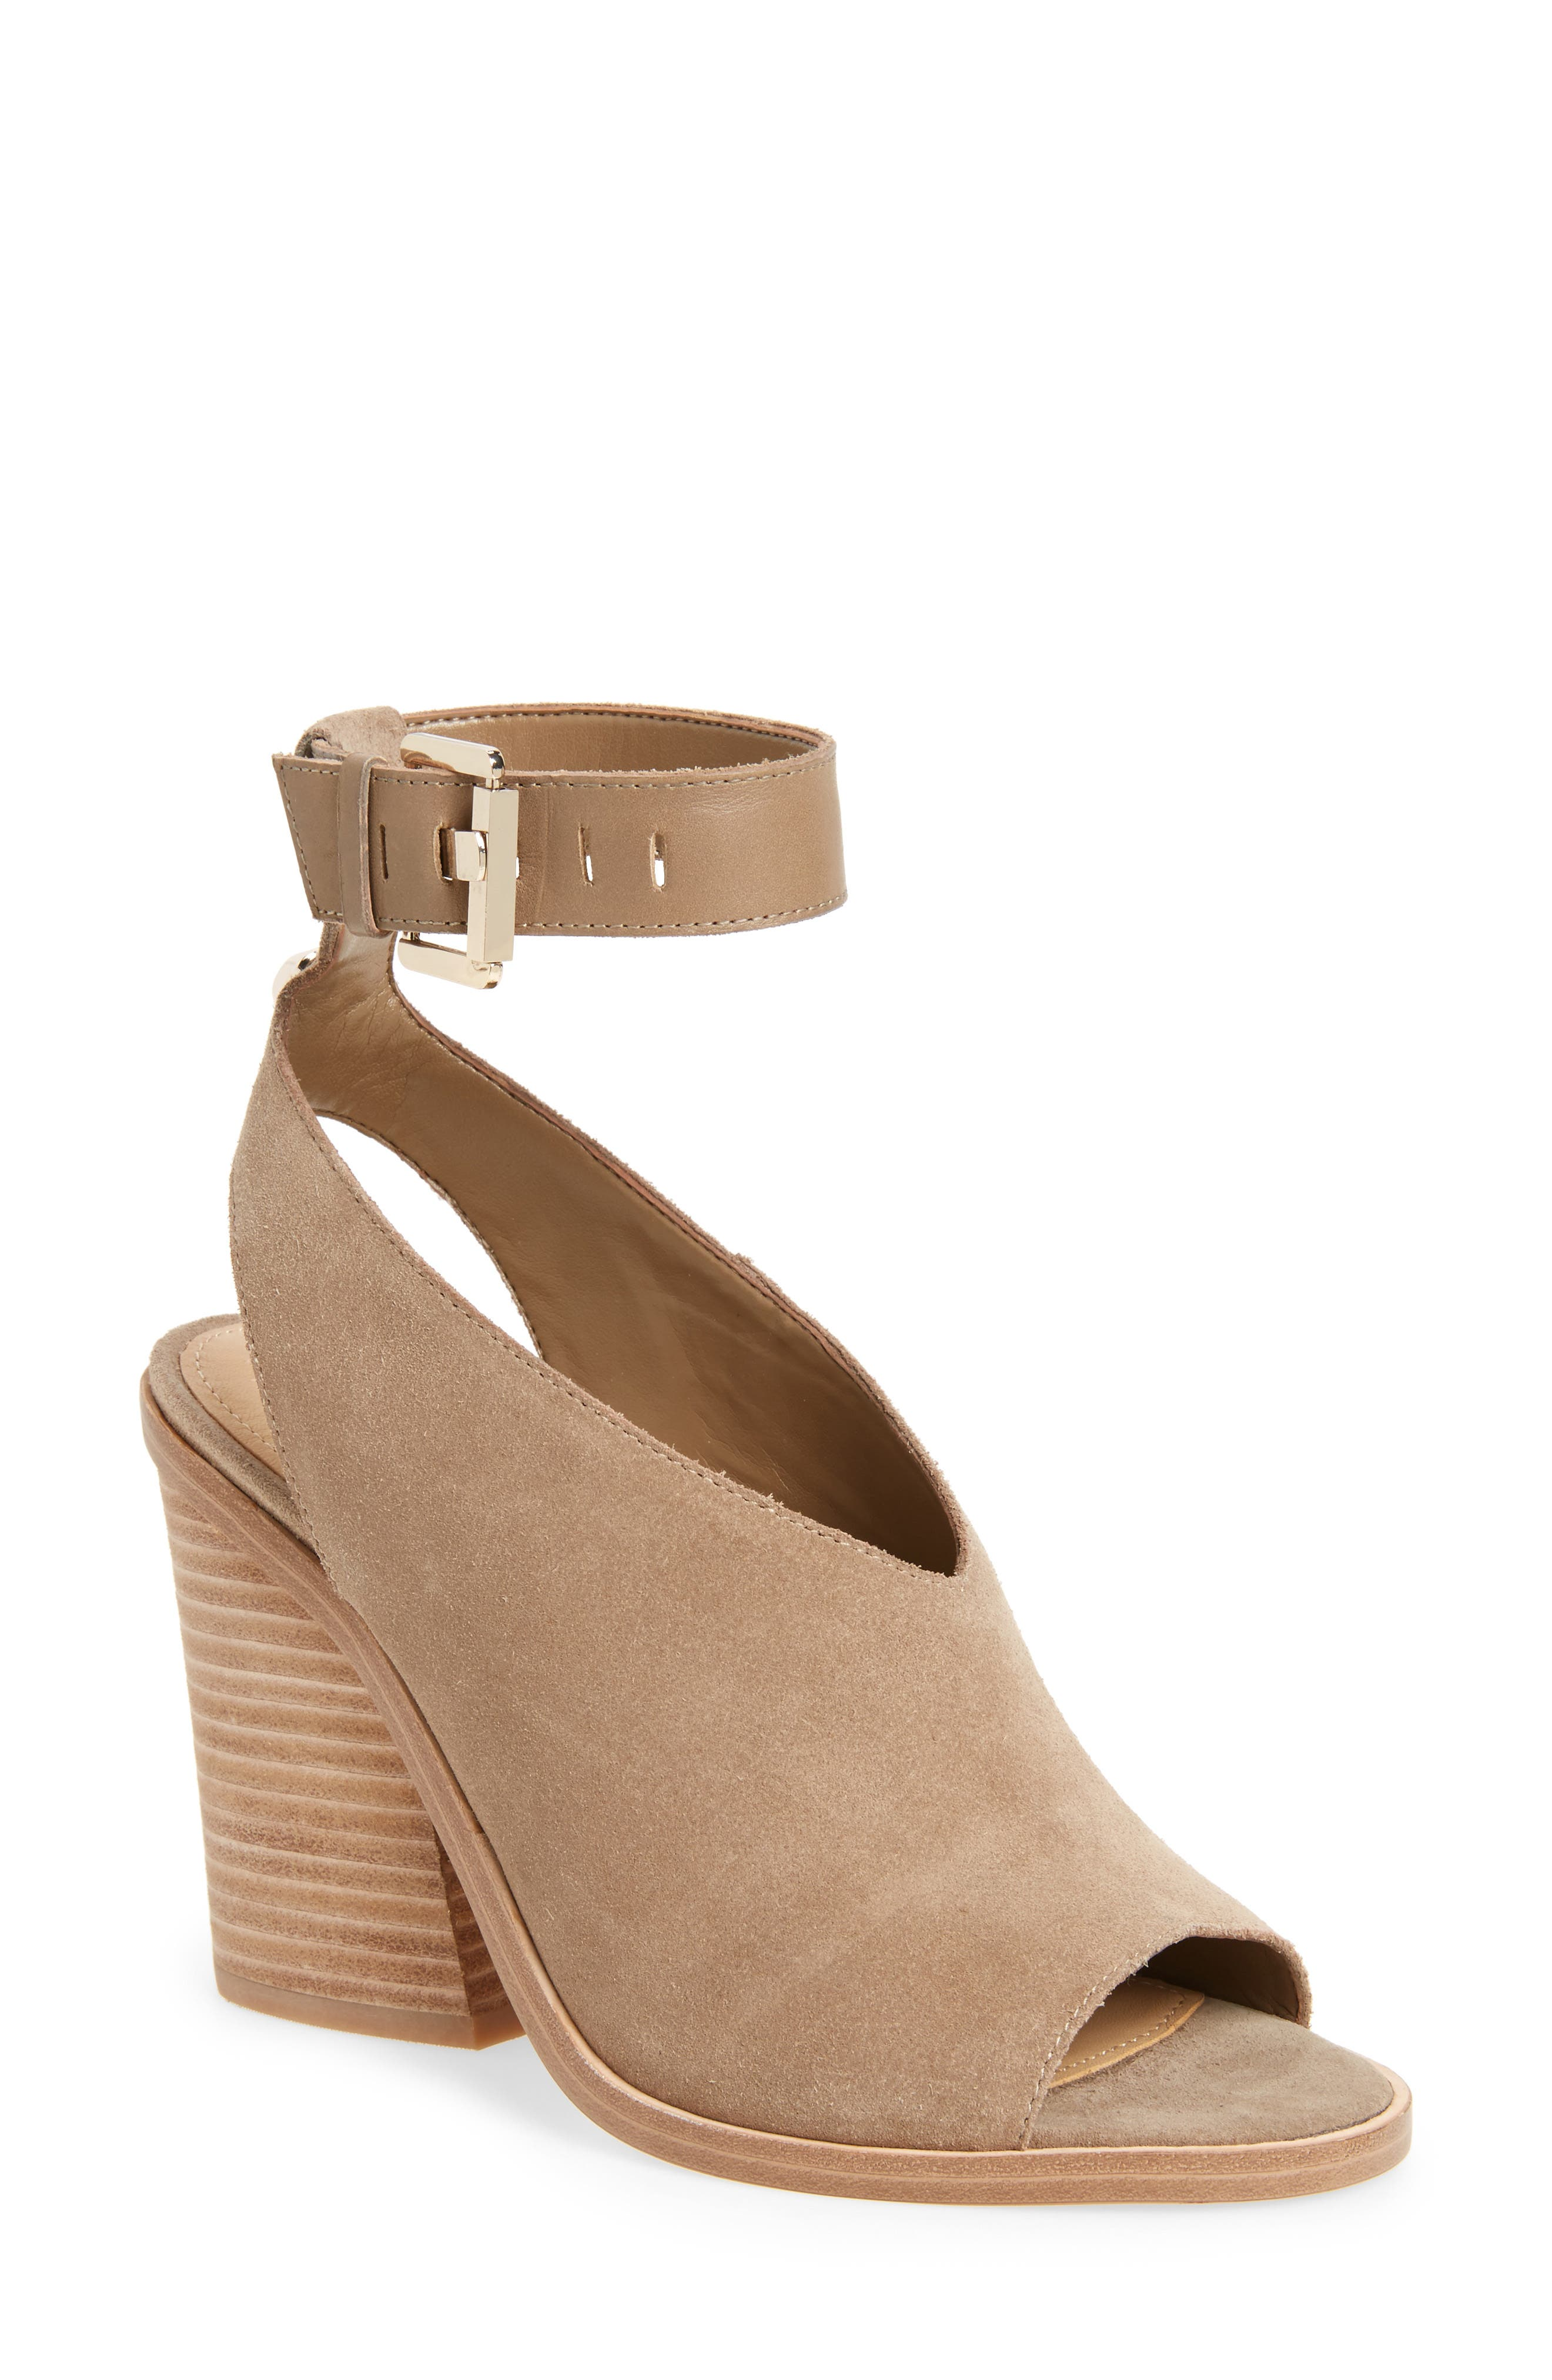 Main Image - Marc Fisher LTD Vidal Ankle Strap Sandal (Women)